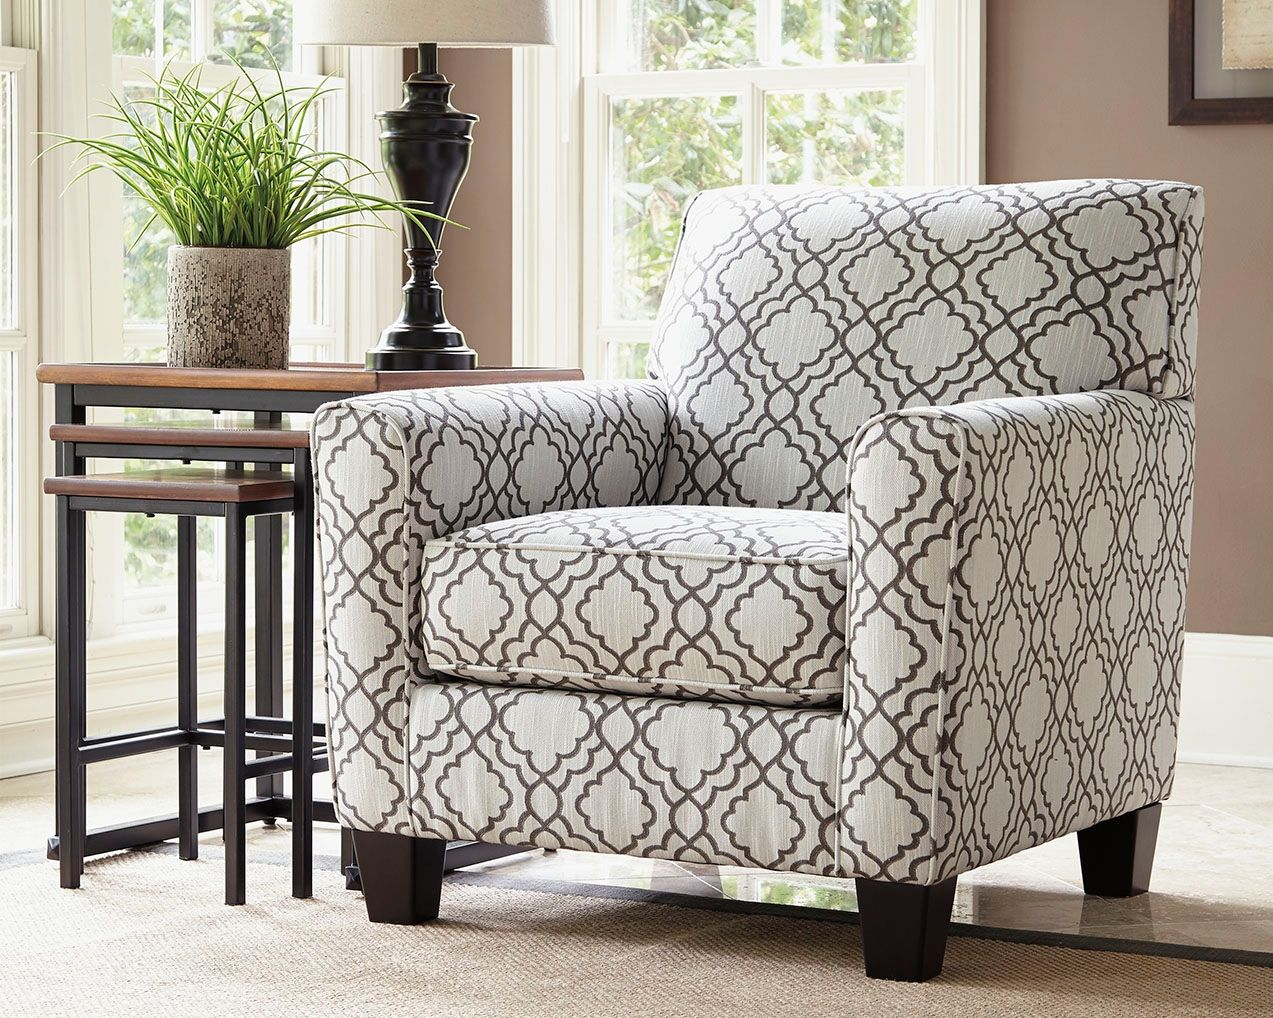 Farouh Chair Pearl Furniture Dining Chair Slipcovers Ashley